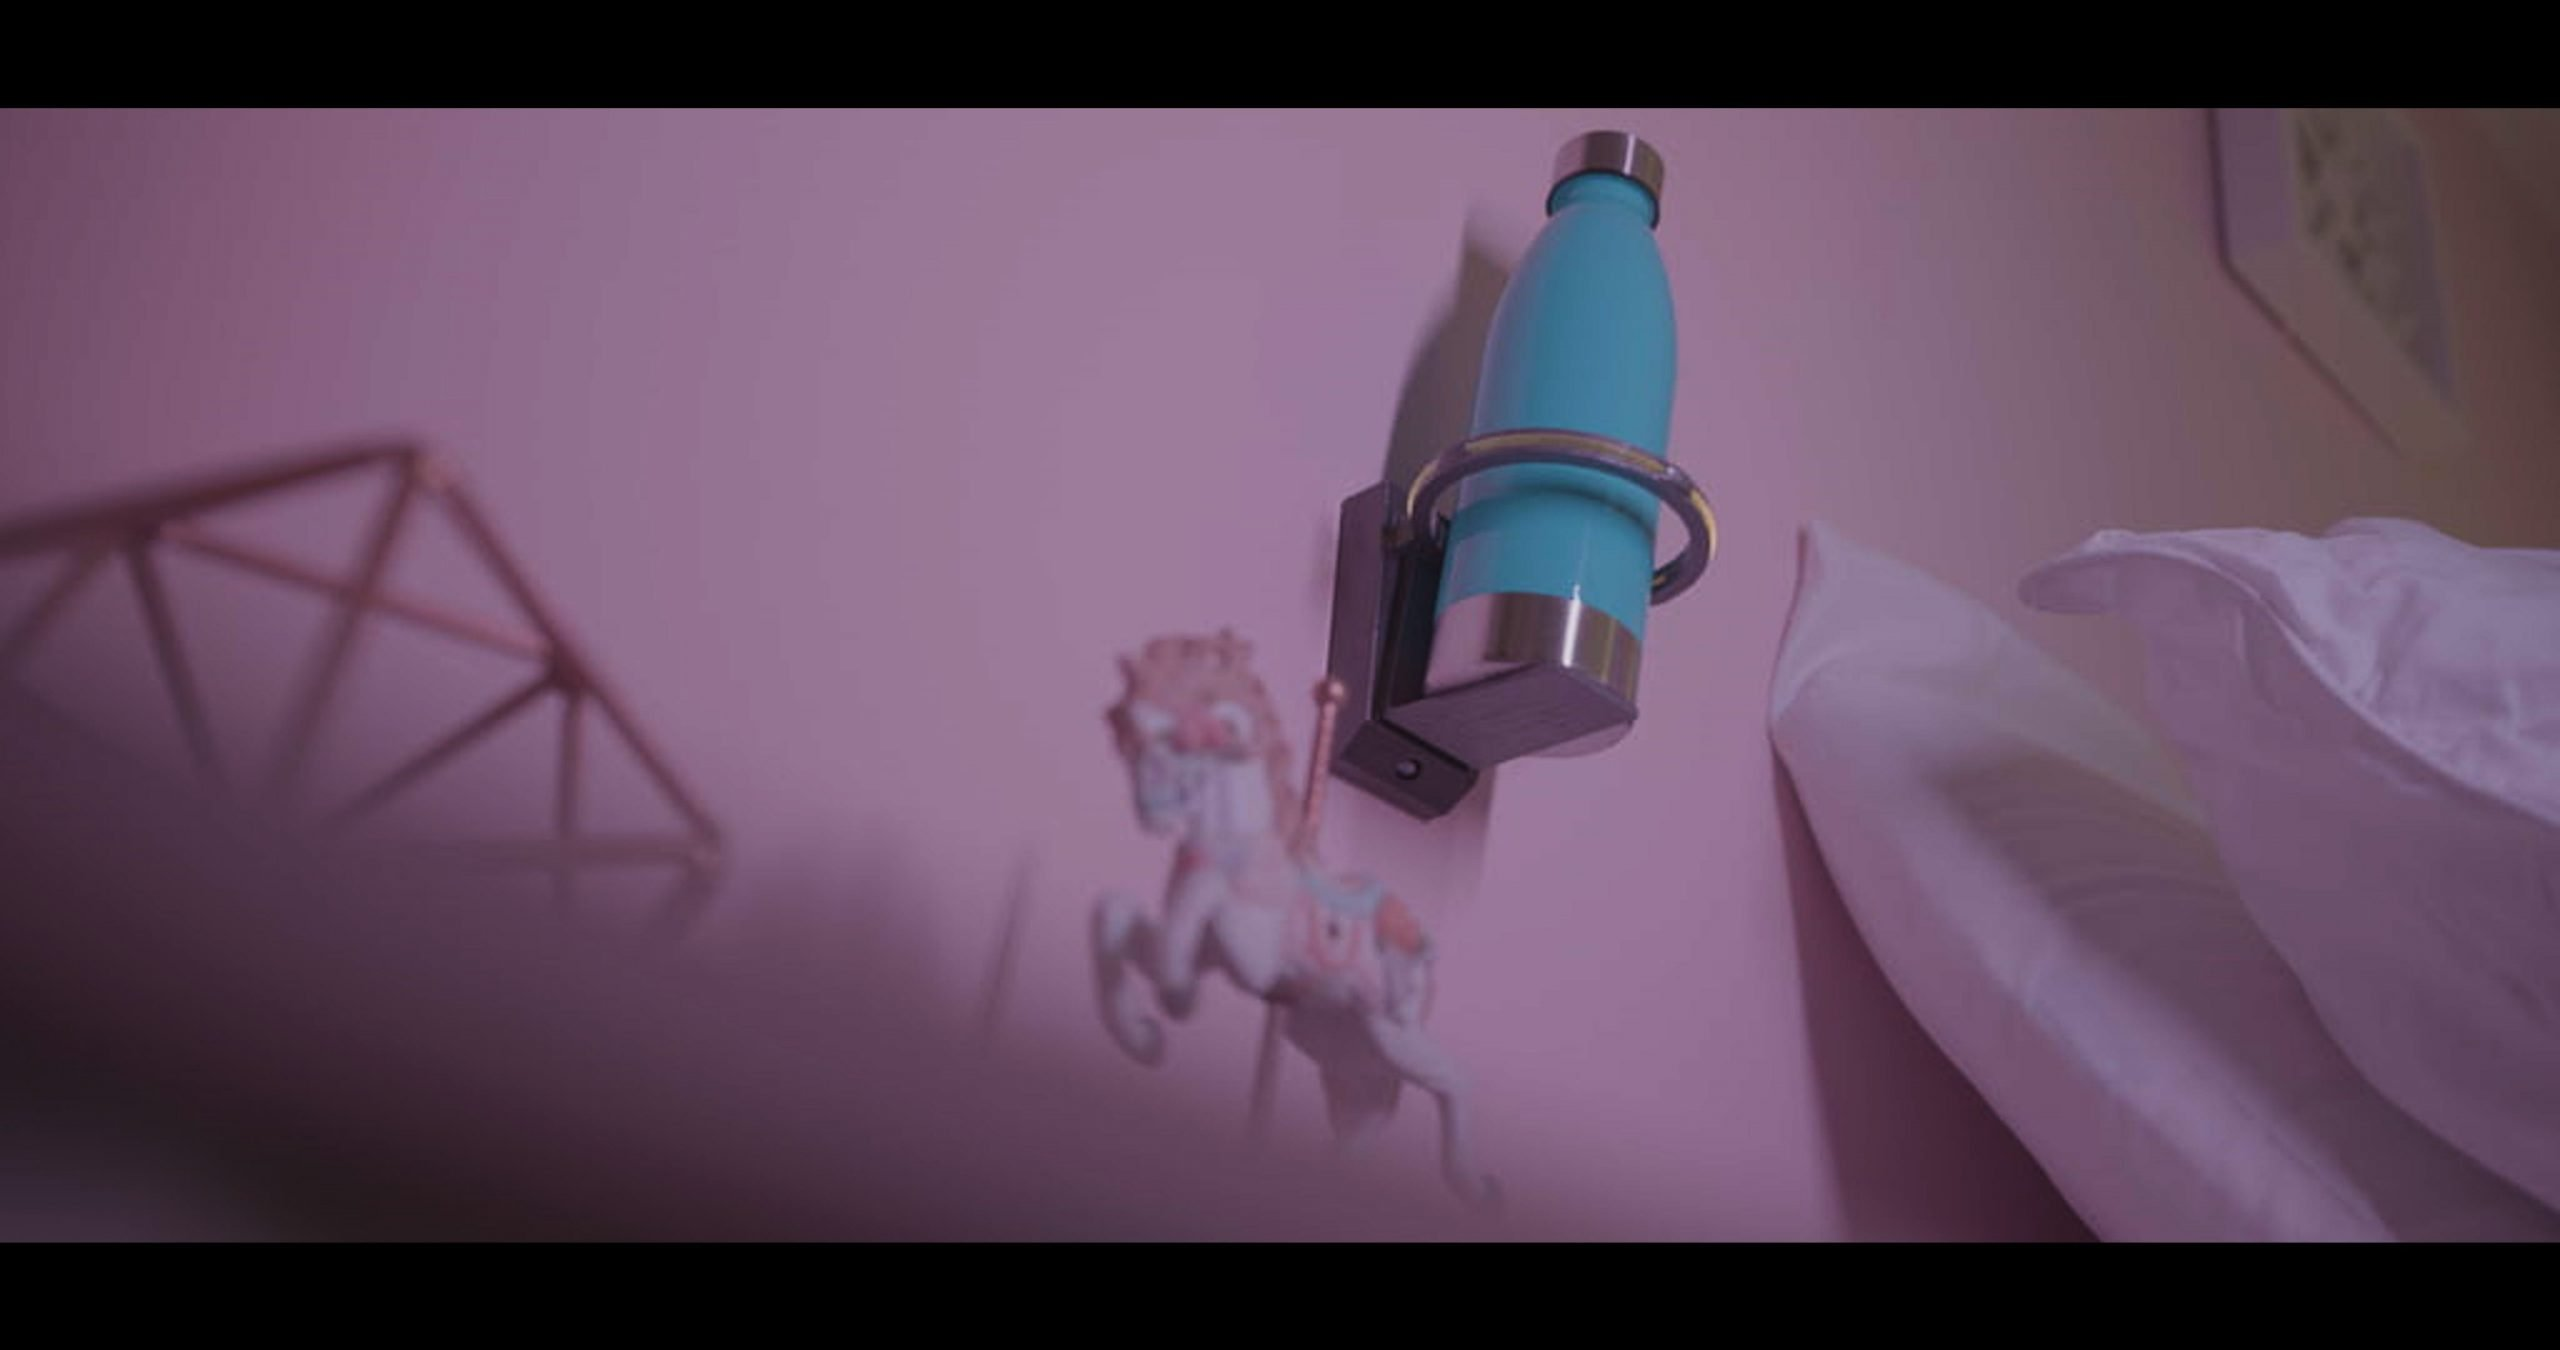 Bedside Bearer: First Ever Wall Mounted, Motion-Activated Night-light Cup Holder